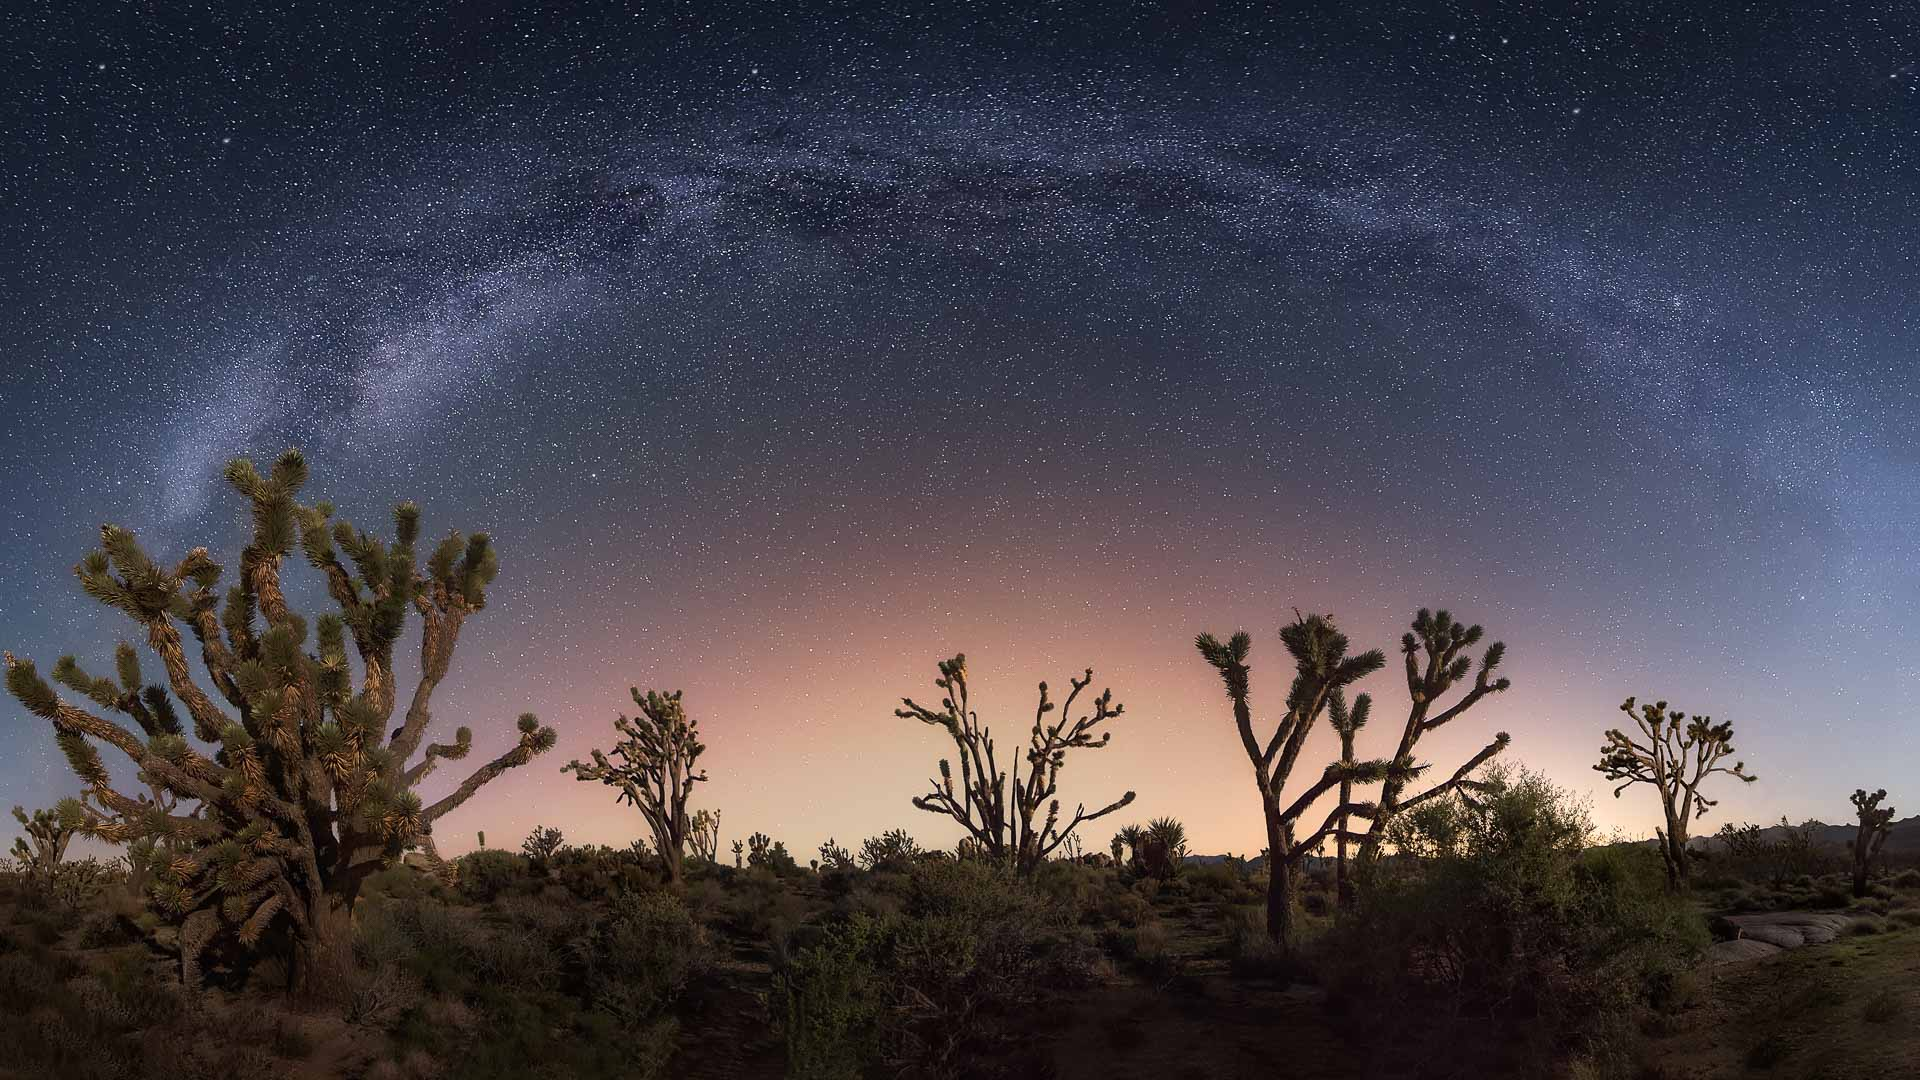 Best Tips for Planning Milky Way Photography